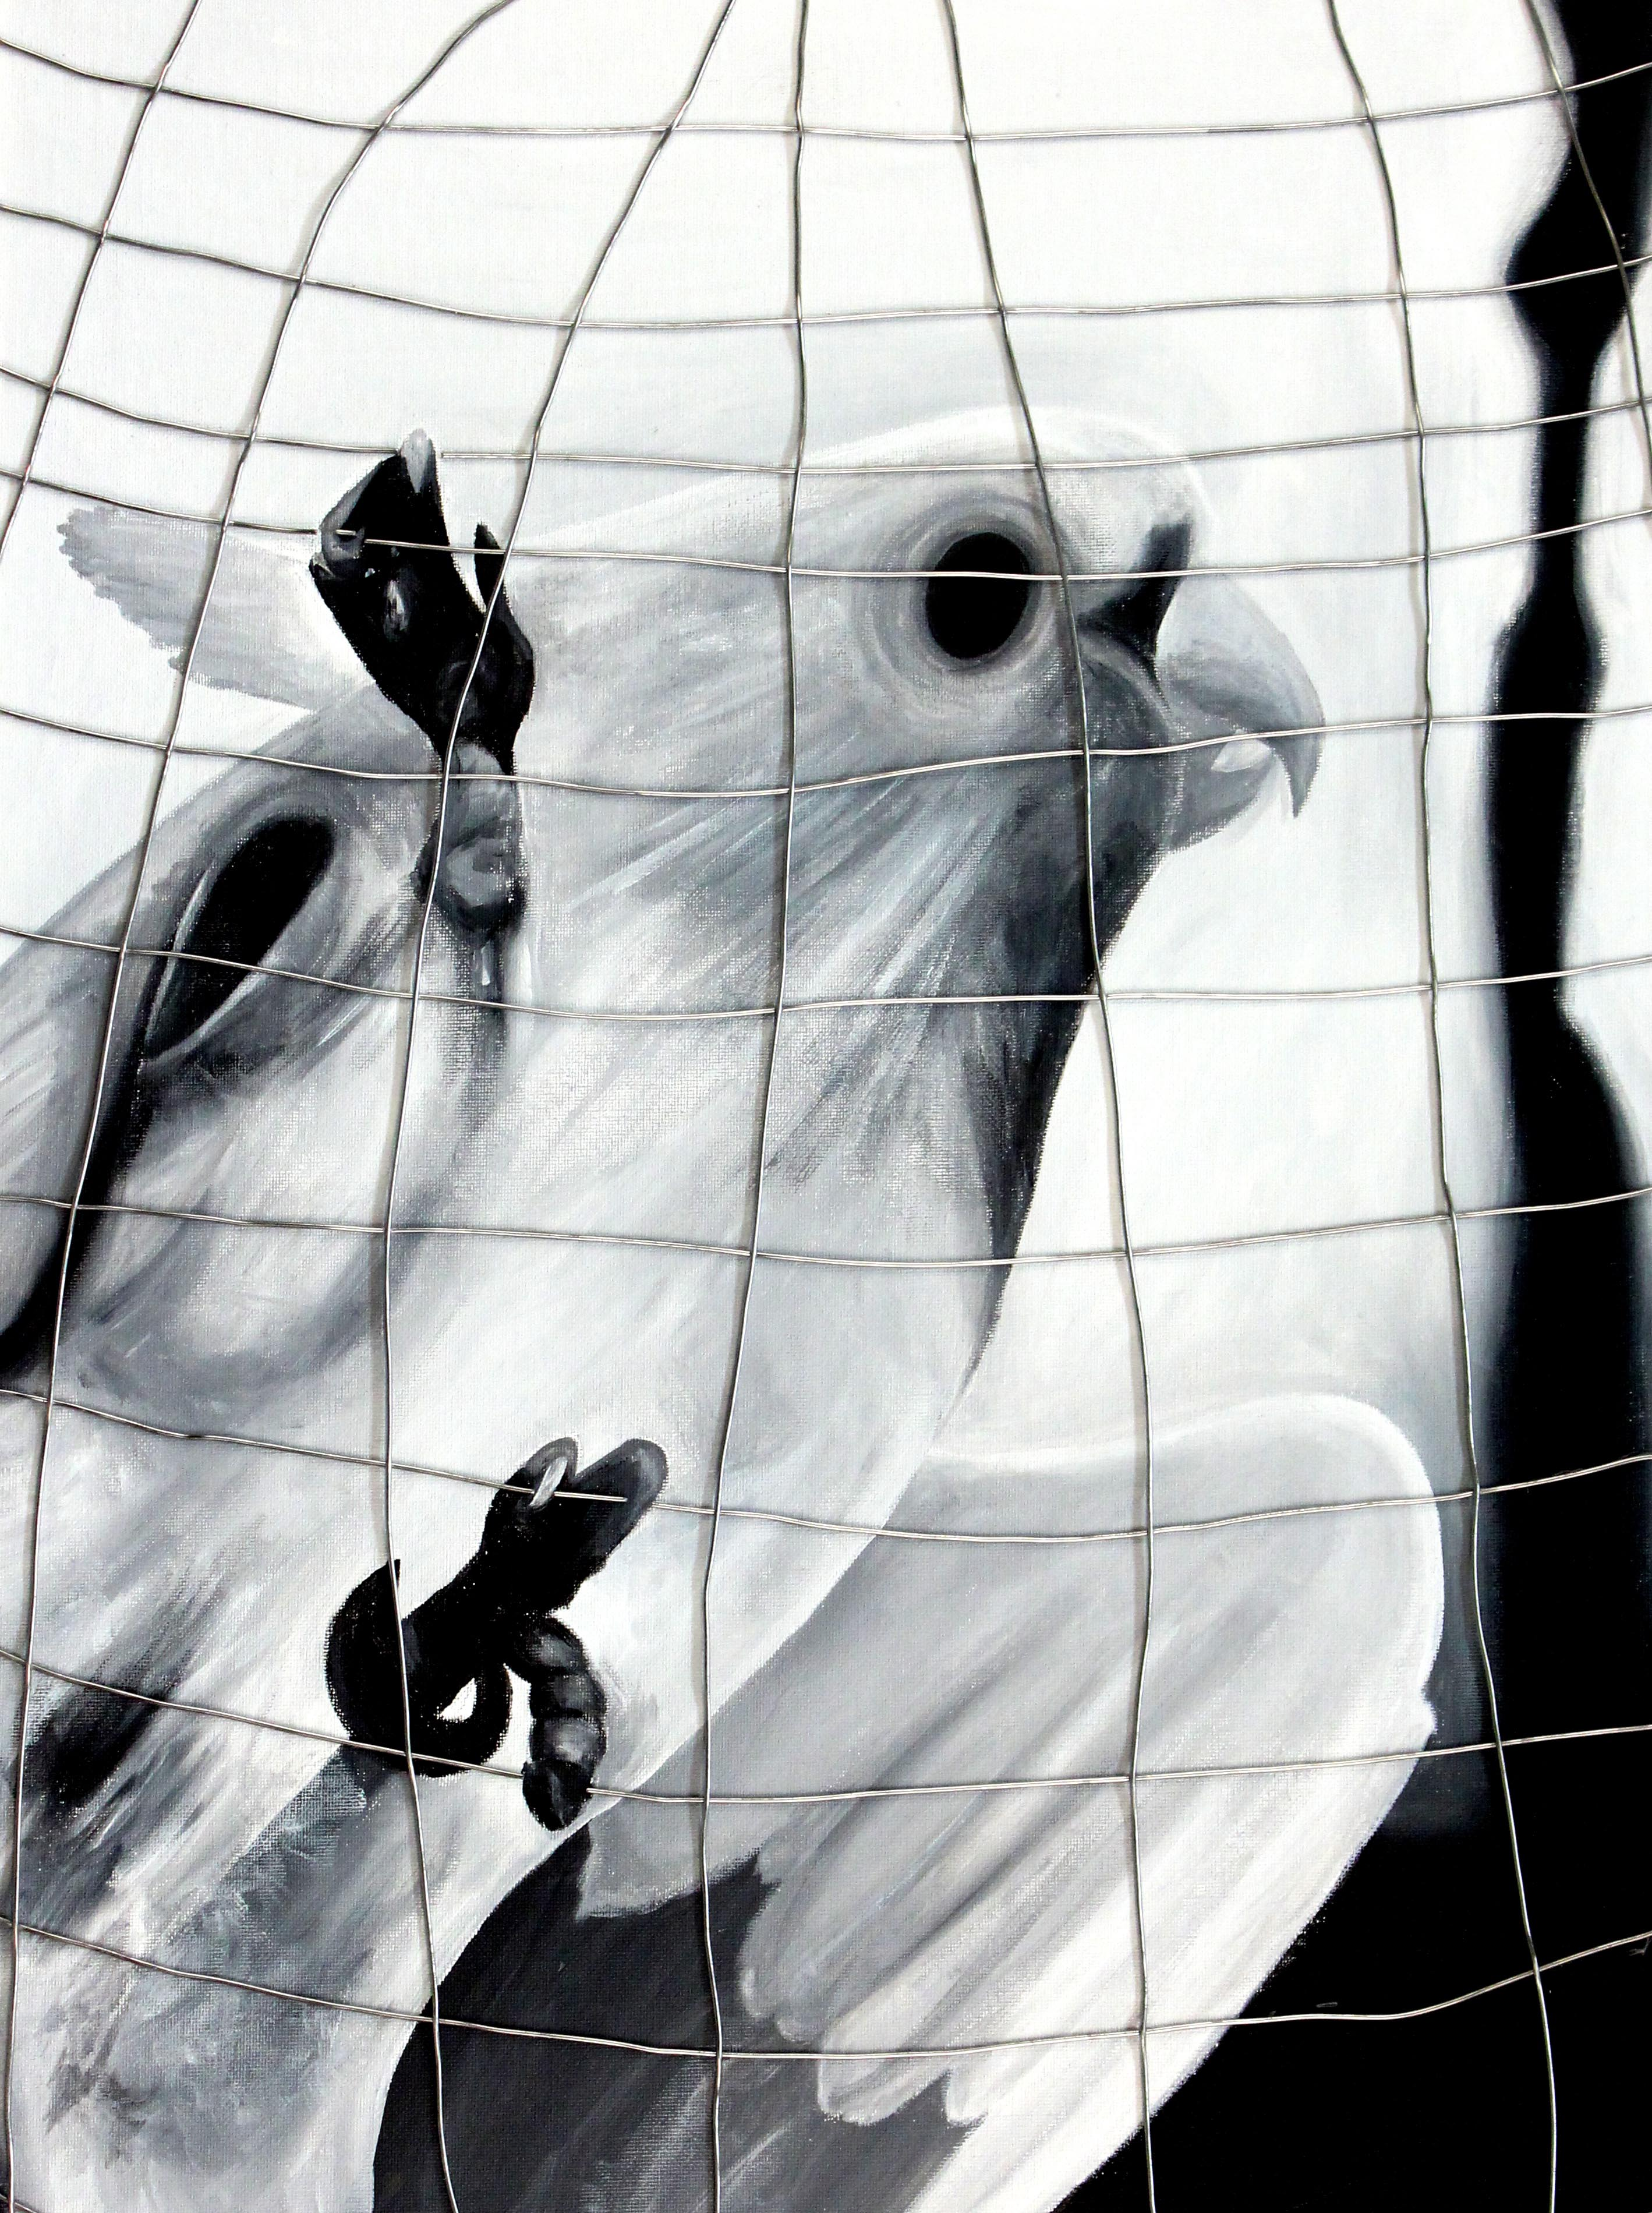 A Bird in a Cage